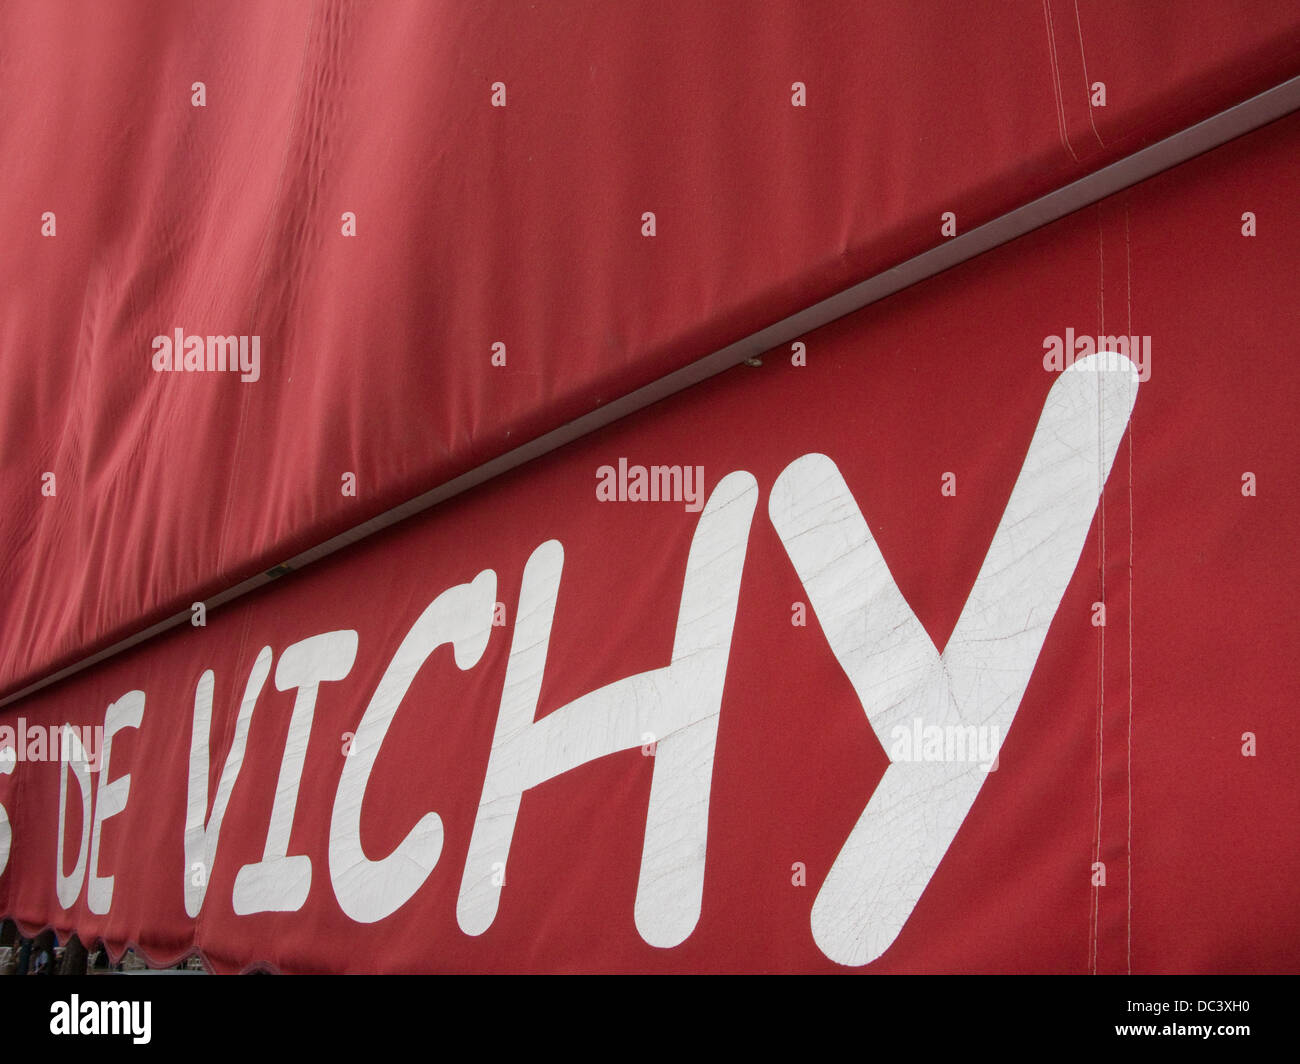 RED AWNING SOUVENIR SHOP VICHY AUVERGNE FRANCE - Stock Image